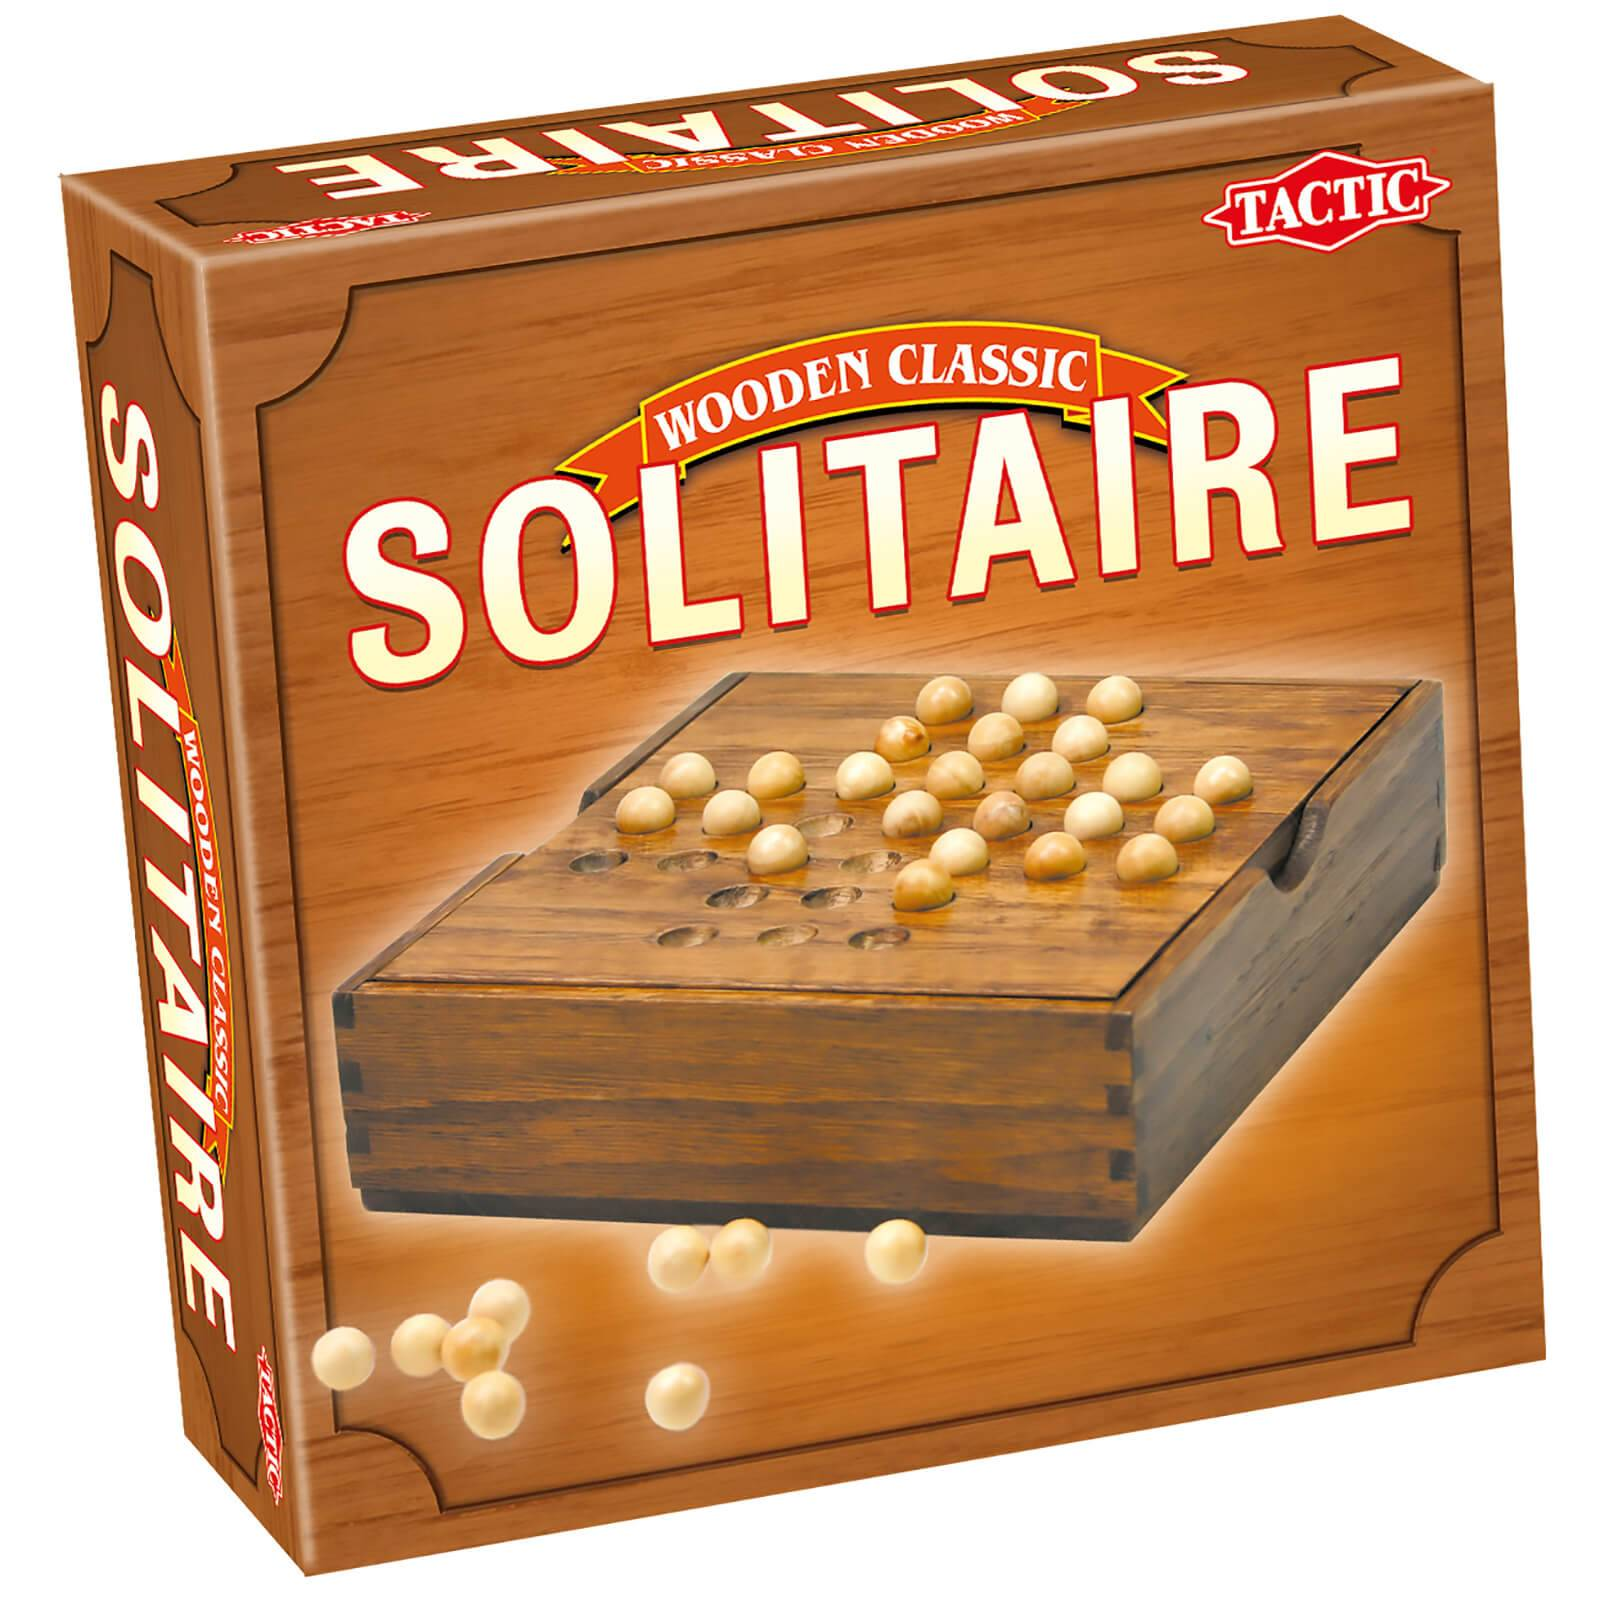 Tactic Games Wooden Classic Solitaire